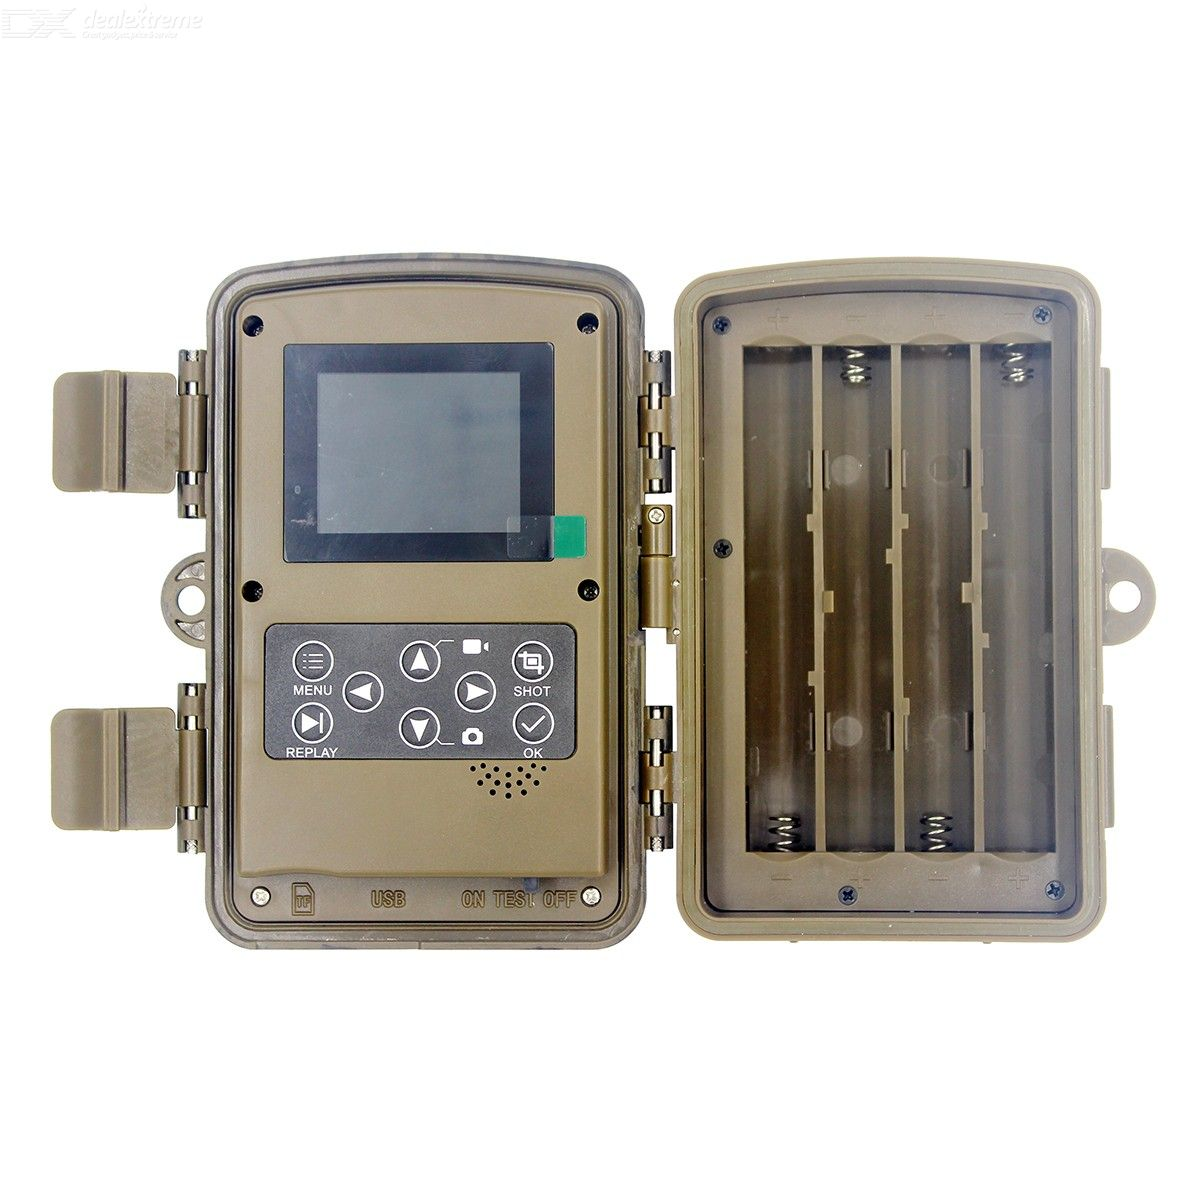 200W 1080p wide angle hunting camera with TFT display